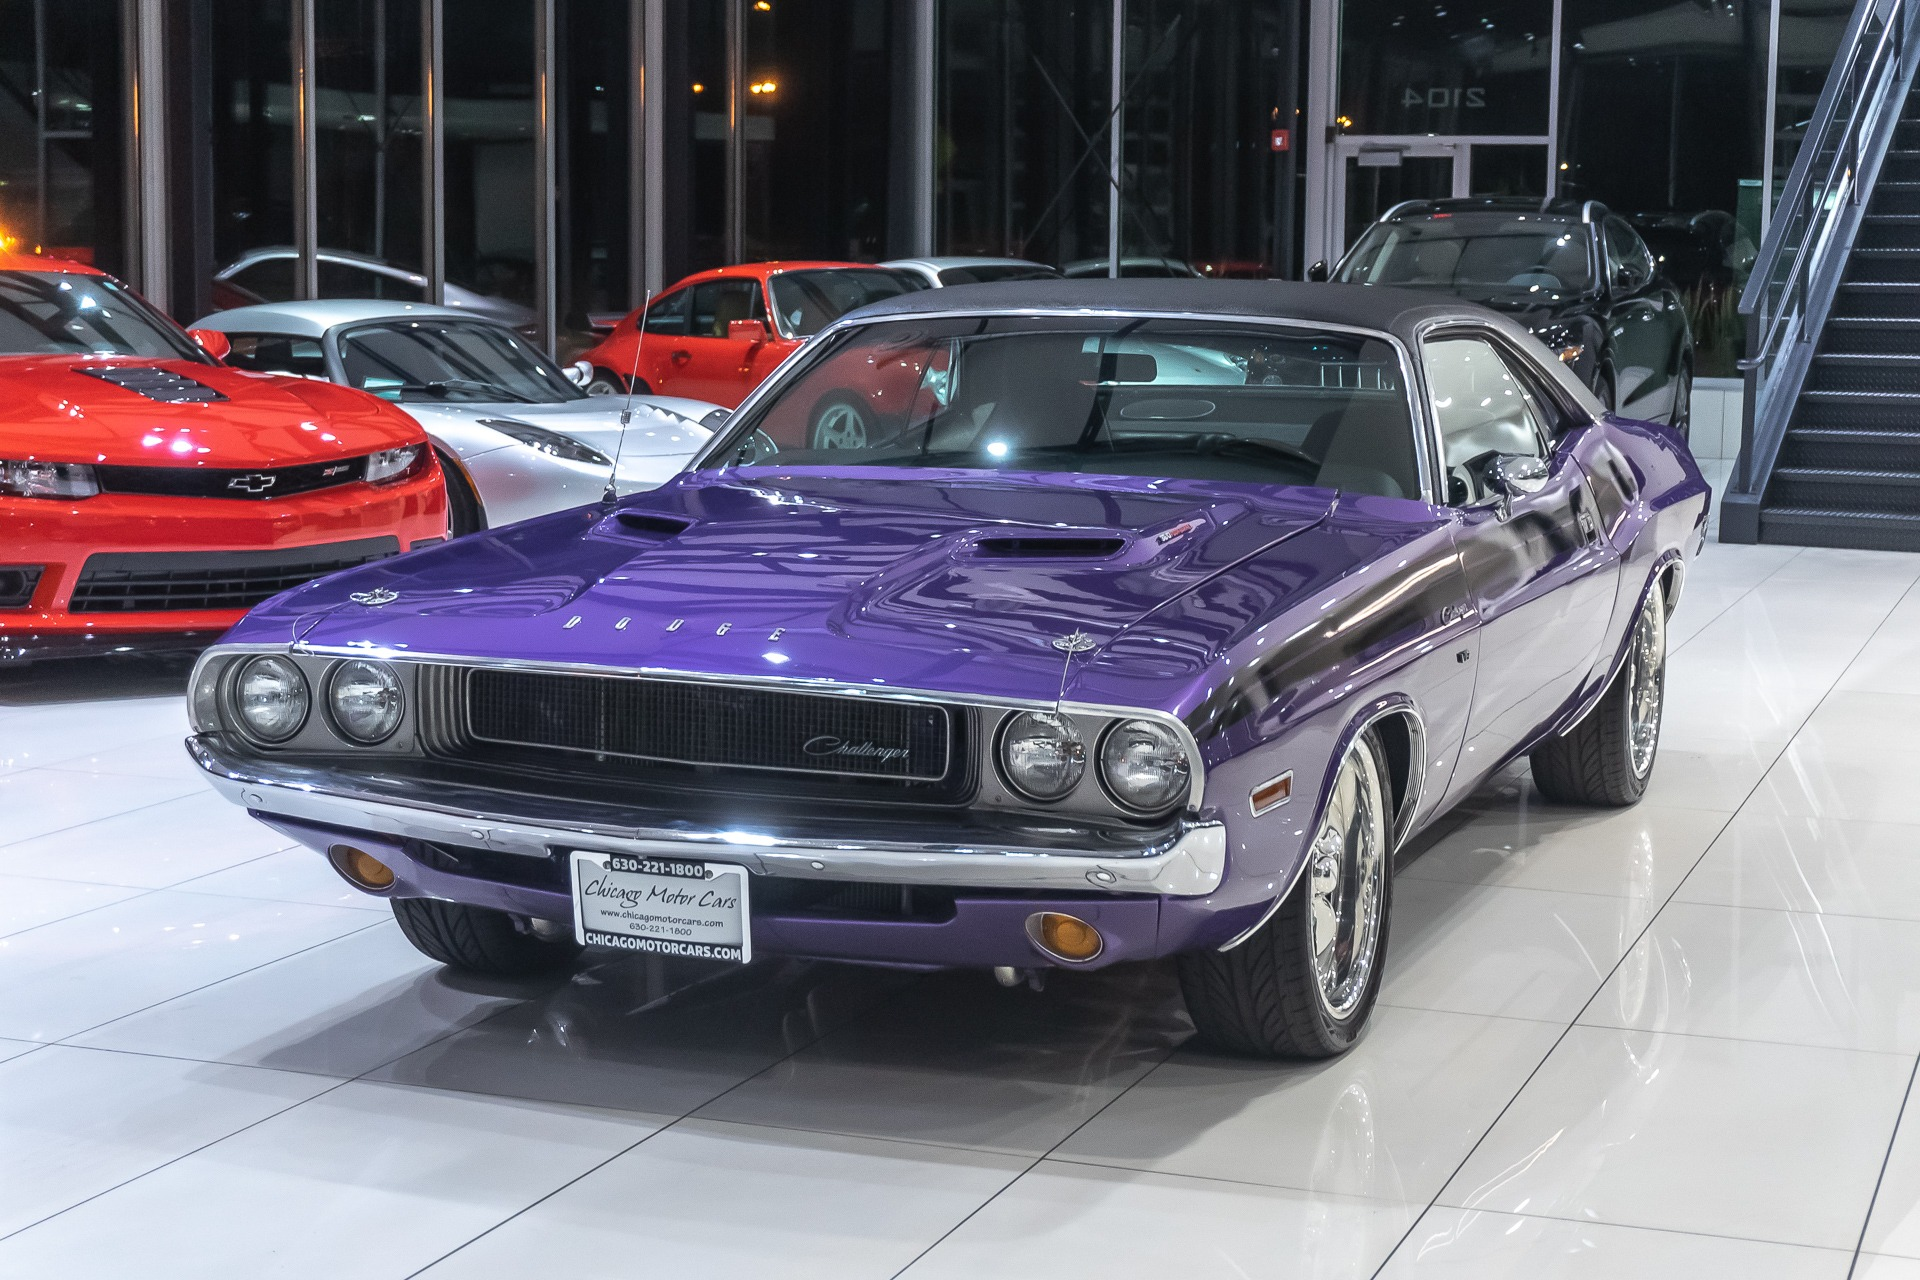 Used-1970-Dodge-Challenger-Coupe-360CI-FI-TECH-FUEL-INJECTED-RESTORED